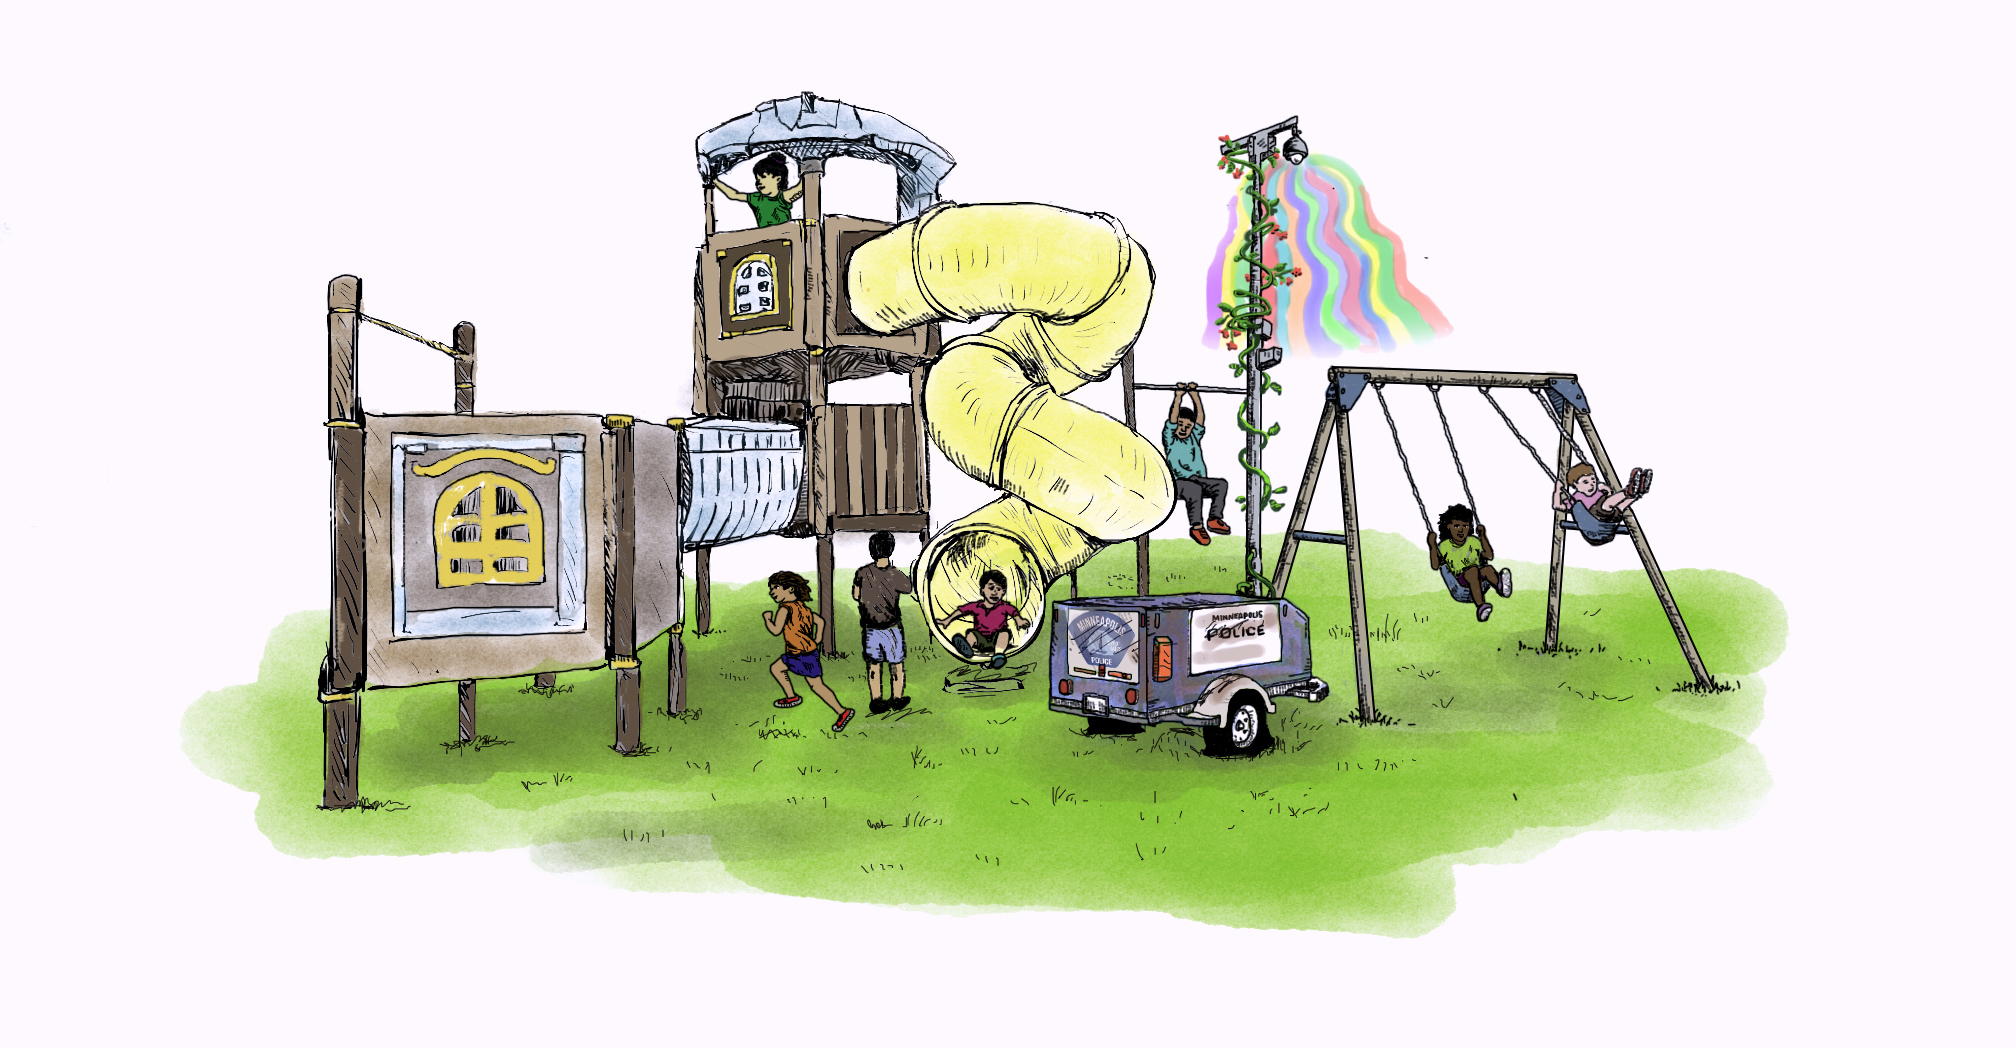 A drawing featuring children playing on a playground built around the MPD street cameras. It has light, bright colors.